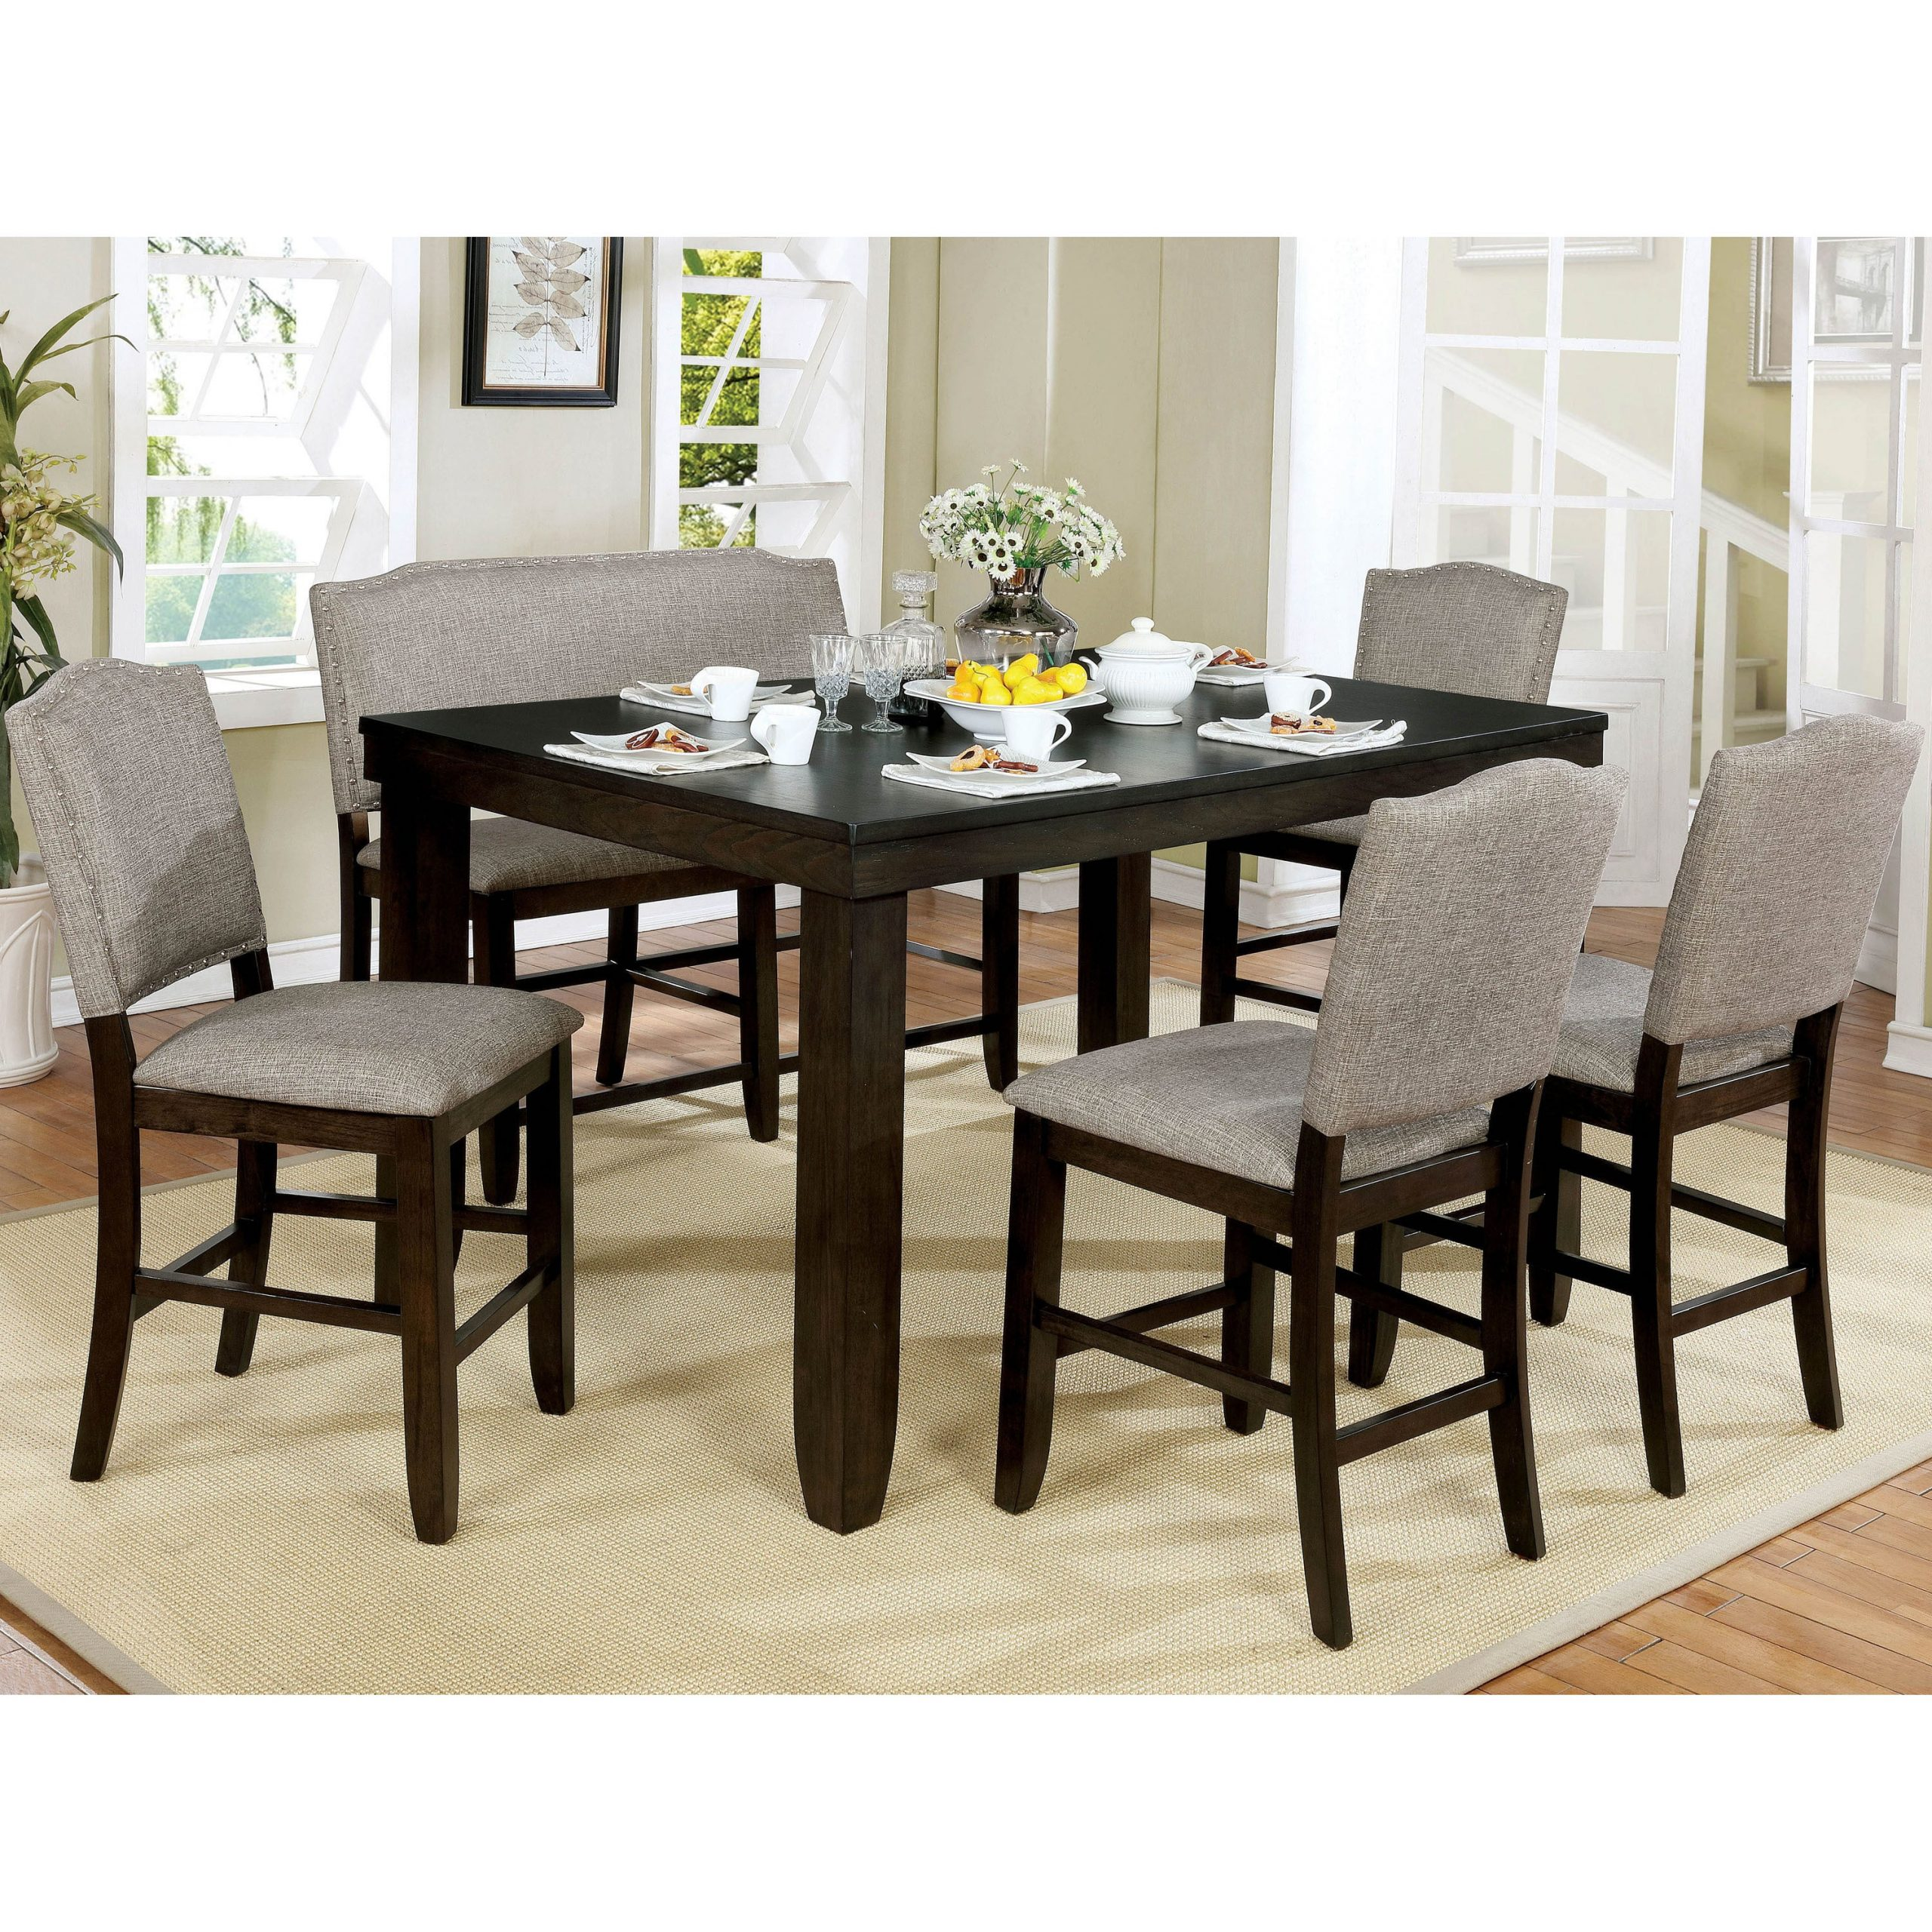 Benchwright Bar Height Dining Tables pertaining to Famous Furniture Of America Davenport Walnut 6-Piece Counter Dining Set